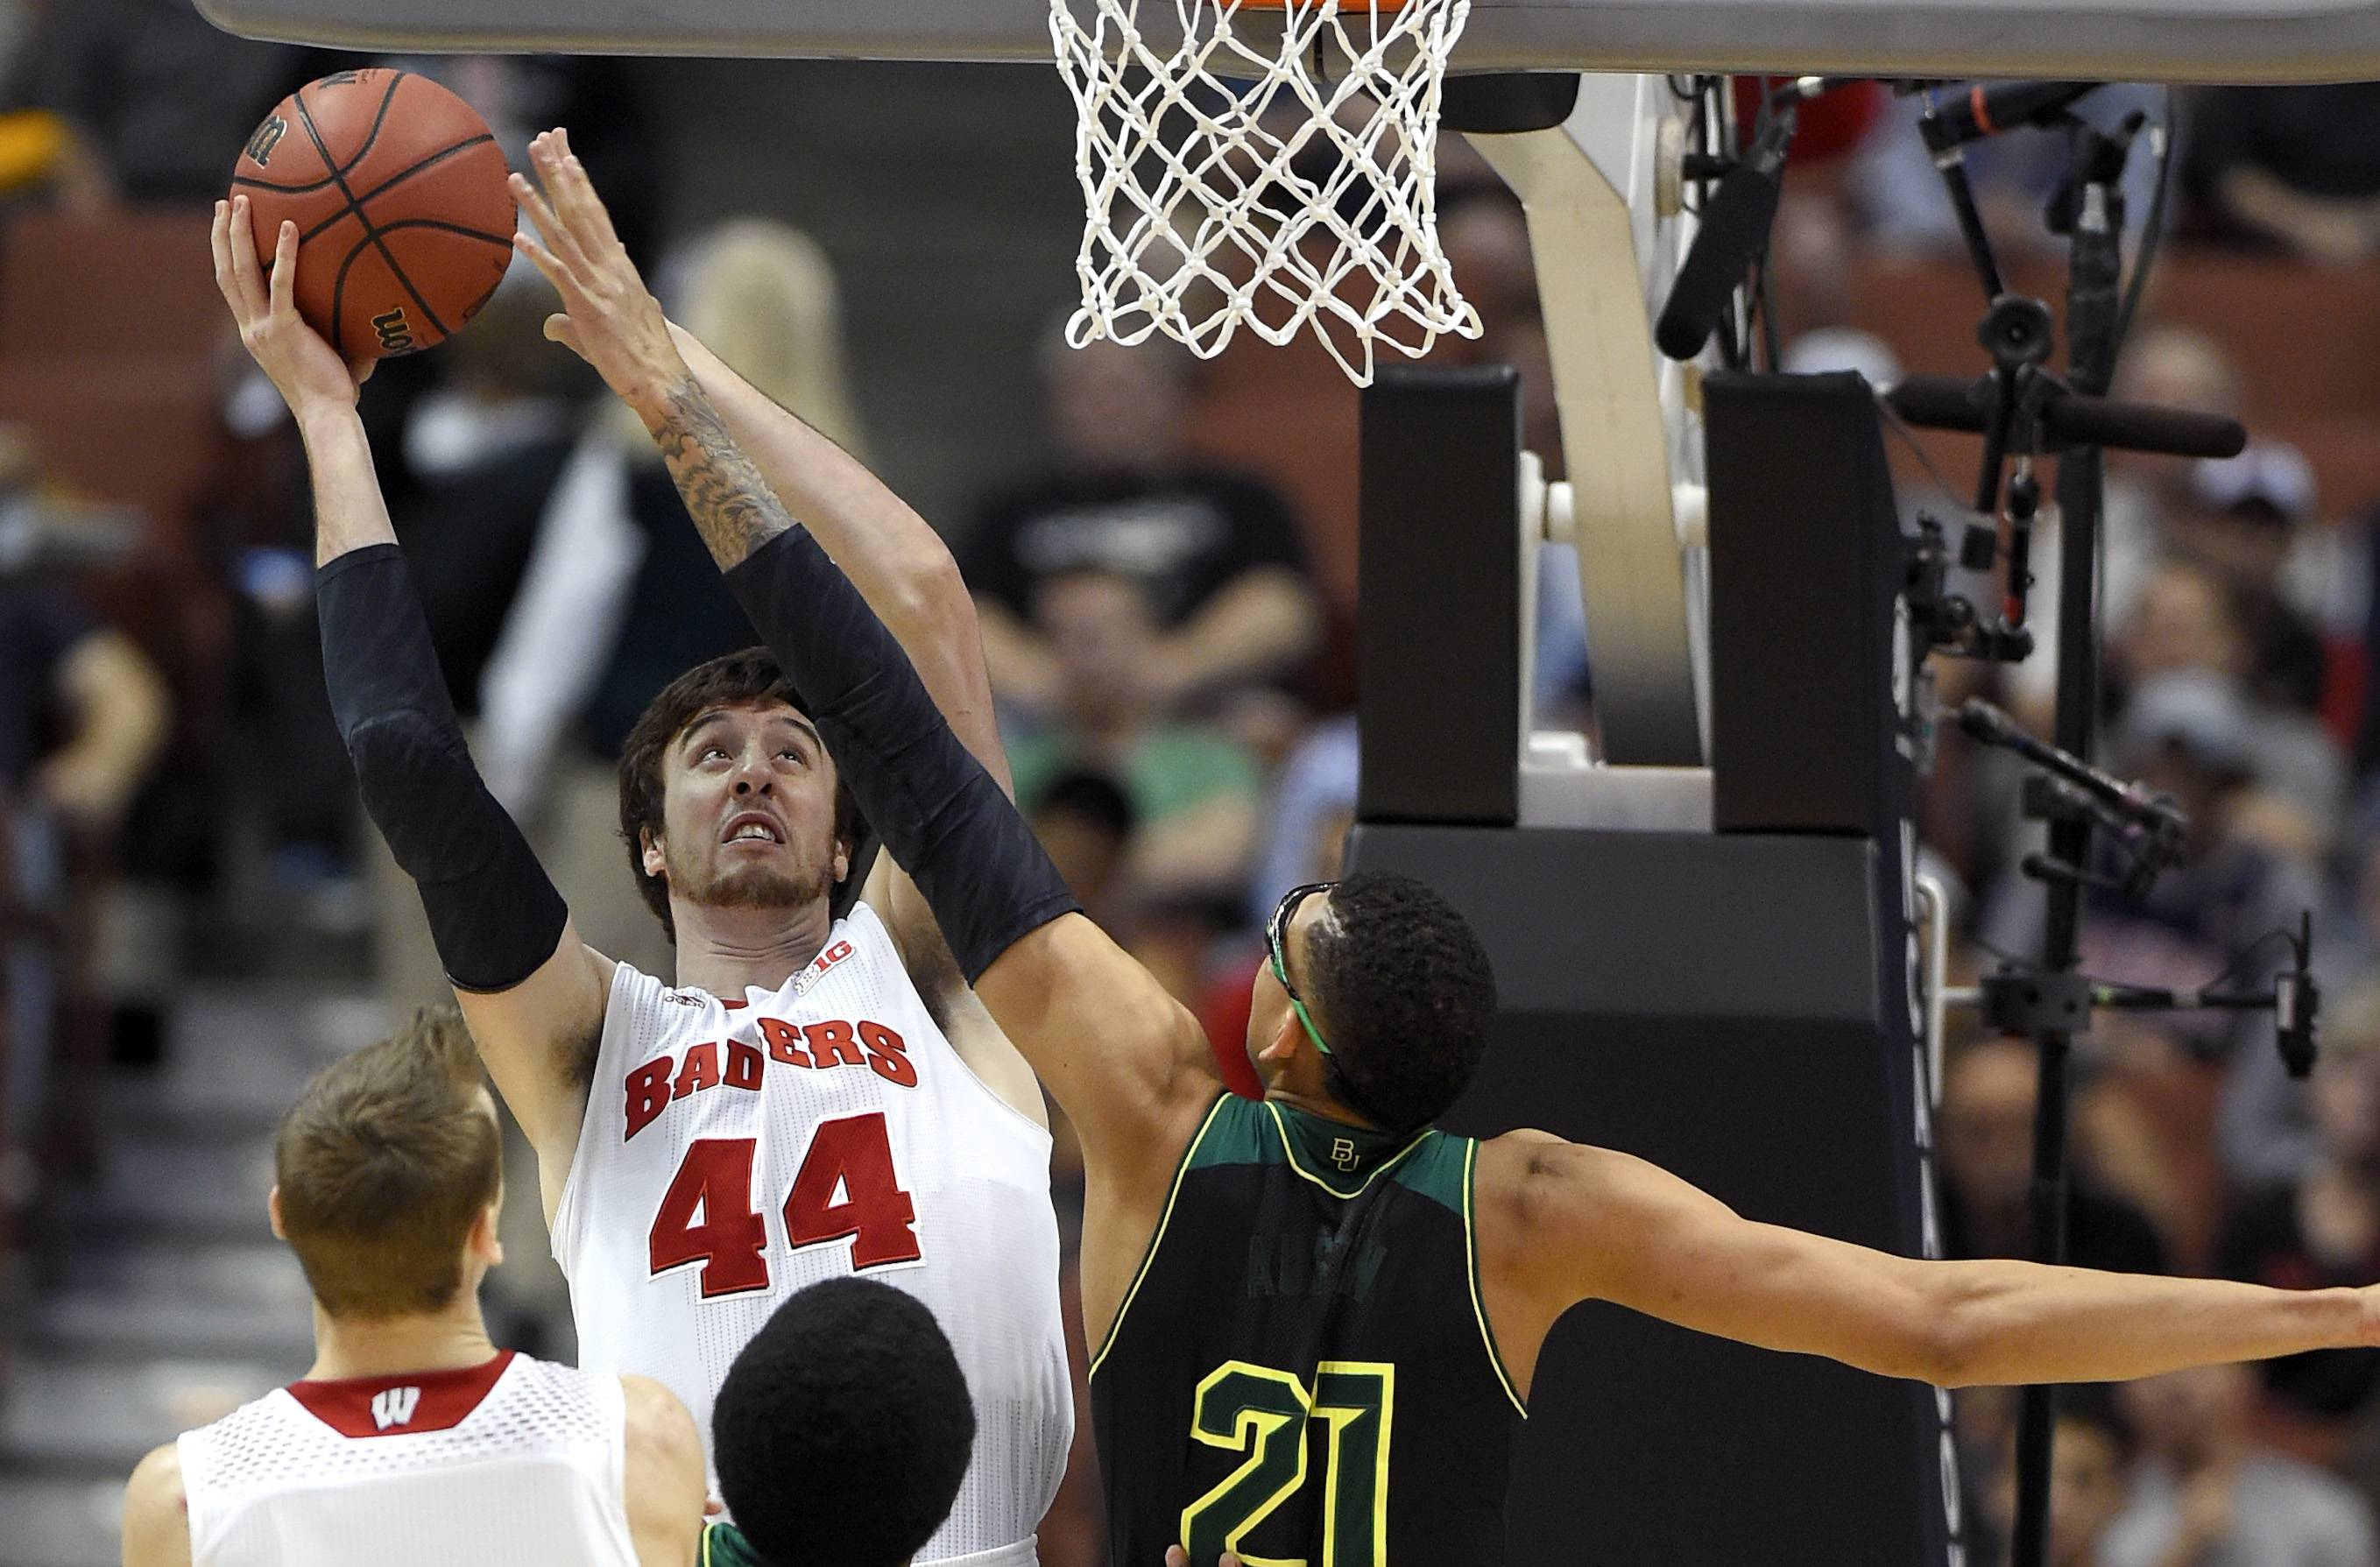 Wisconsin forward Frank Kaminsky (44) shoots over Baylor center Isaiah Austin (21) during an NCAA men's college basketball tournament regional semifinal, Thursday, March 27, 2014, in Anaheim, Calif.